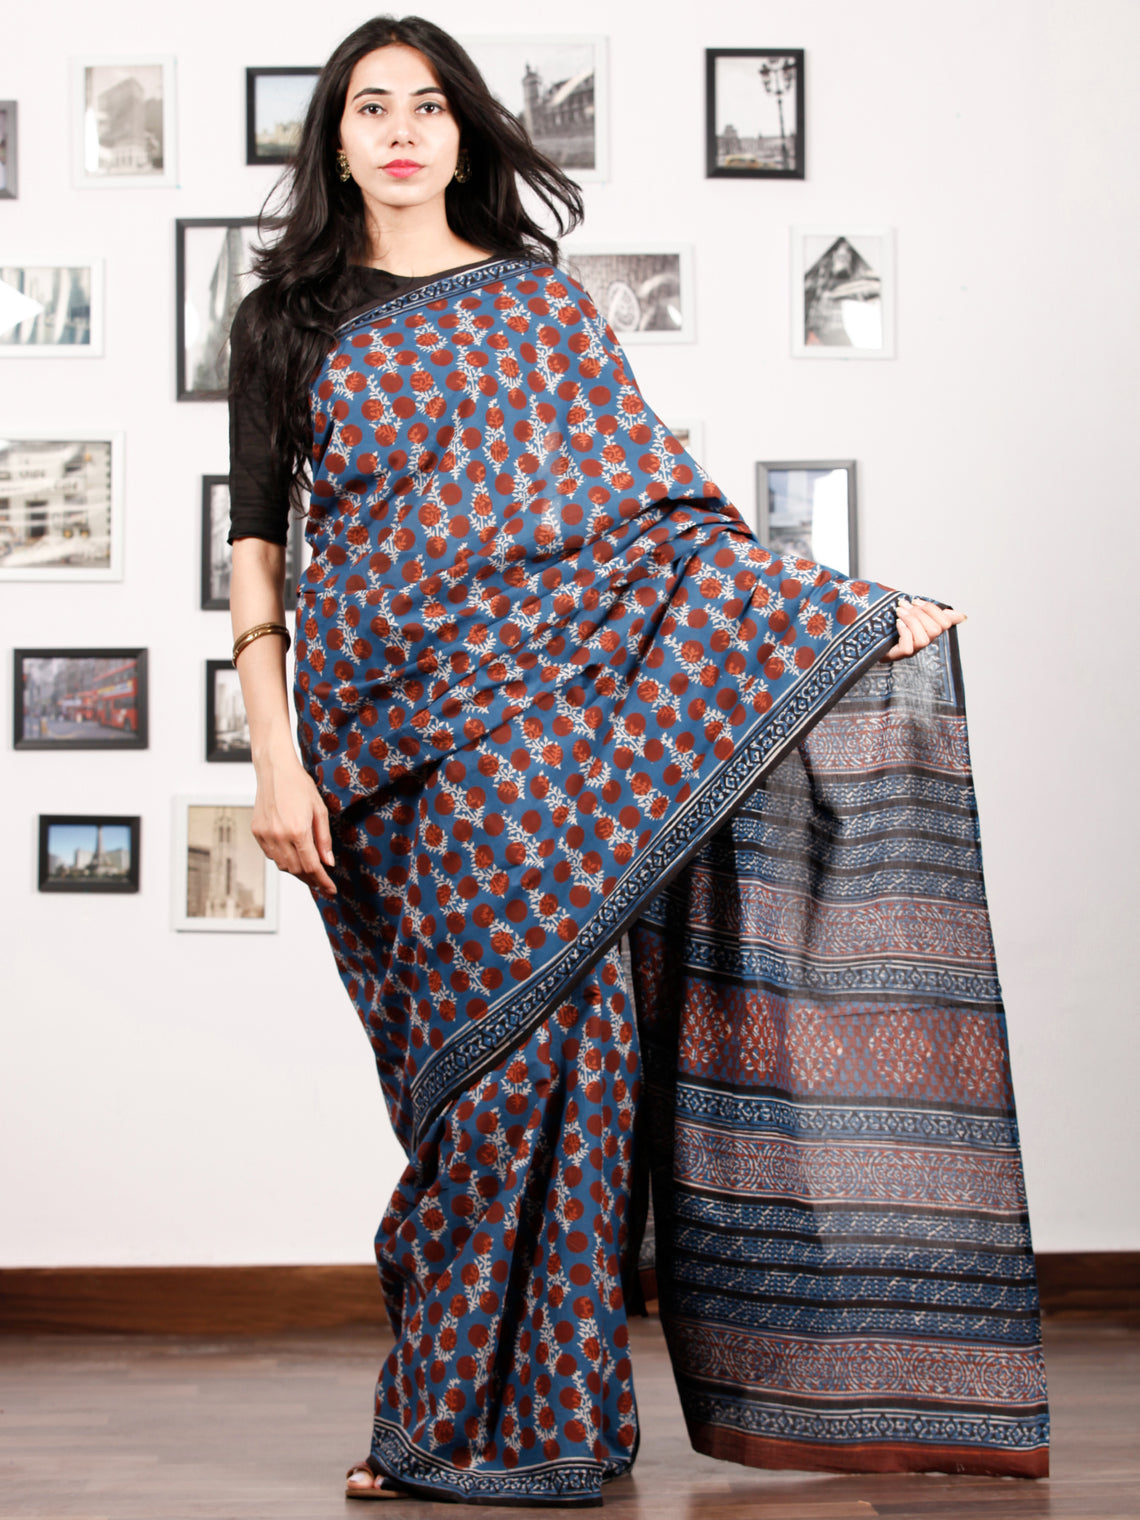 Indigo Rust Ivory Black Hand Block Printed Cotton Saree In Natural Colors - S031702920